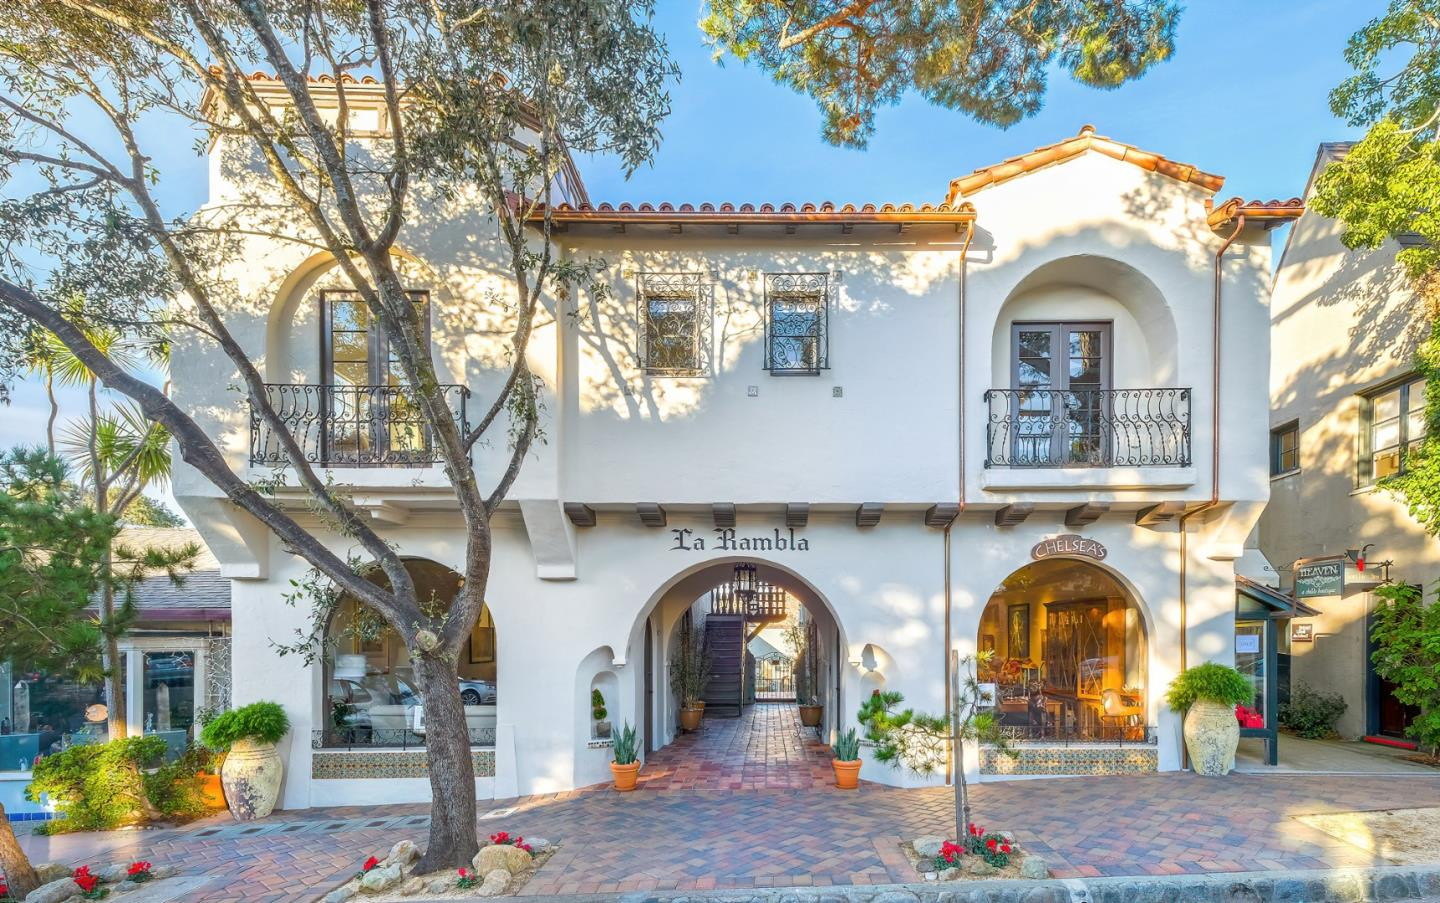 One of a kind luxury property in the heart of downtown Carmel-by-the-Sea featuring two residences with ocean views, a private and sunny 1,700 sf courtyard with designer lighting and sound, plus two commercial units with hardwood floors and separate baths. Located just a few blocks from world-renowned Carmel Beach, this Mediterranean-style building, originally constructed in 1929 and designed by Guy O. Koepp, recently underwent a multiyear, extensive renovation. Highlights include high-end finishes throughout, elevator, laundry room, 3 storage rooms, plus a reception room in close proximity to the courtyard. This trophy property offers a variety of uses and possibilities. Property is deemed historic and could offer a tax benefit to its future owner. Seize your opportunity now to own an iconic piece of our village by the sea.